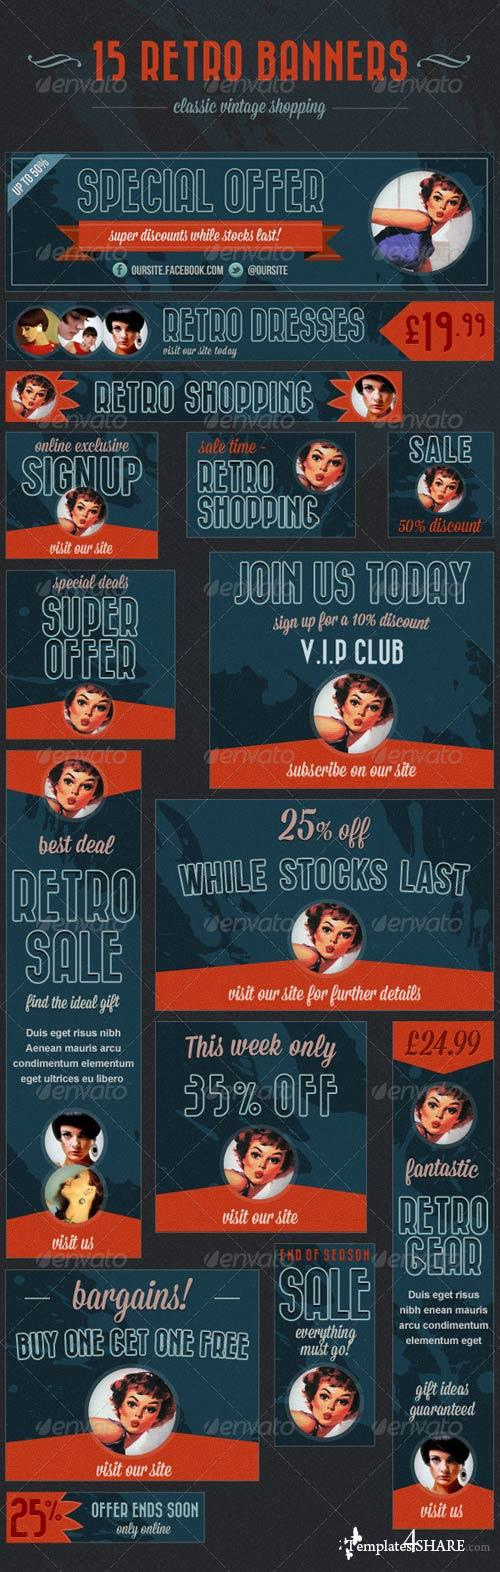 GraphicRiver 15 Retro Banners - Vintage Shopping Ads